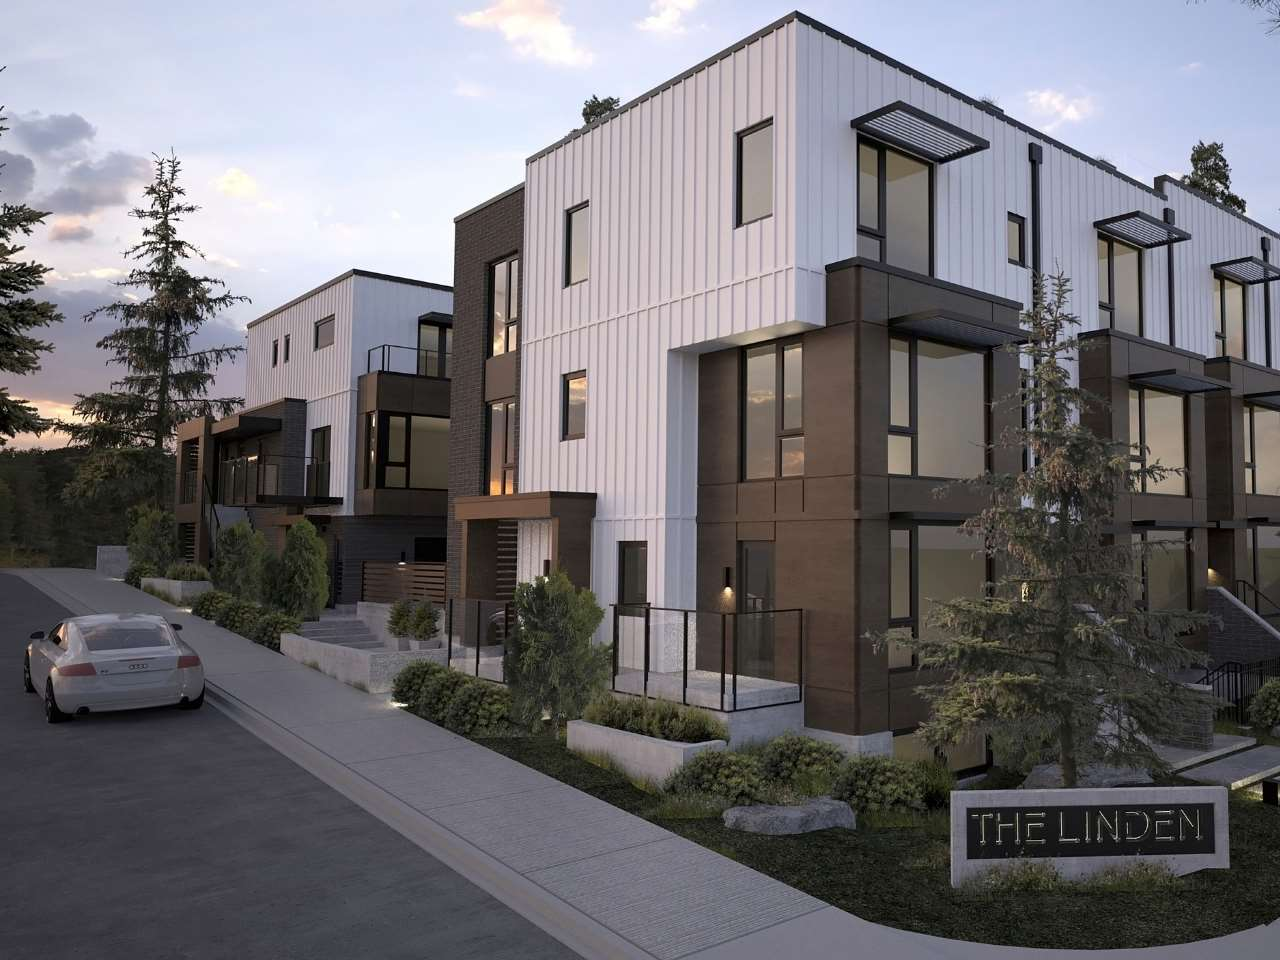 TH5 610 E 3RD STREET - Lower Lonsdale Townhouse for sale, 4 Bedrooms (R2516505) - #1